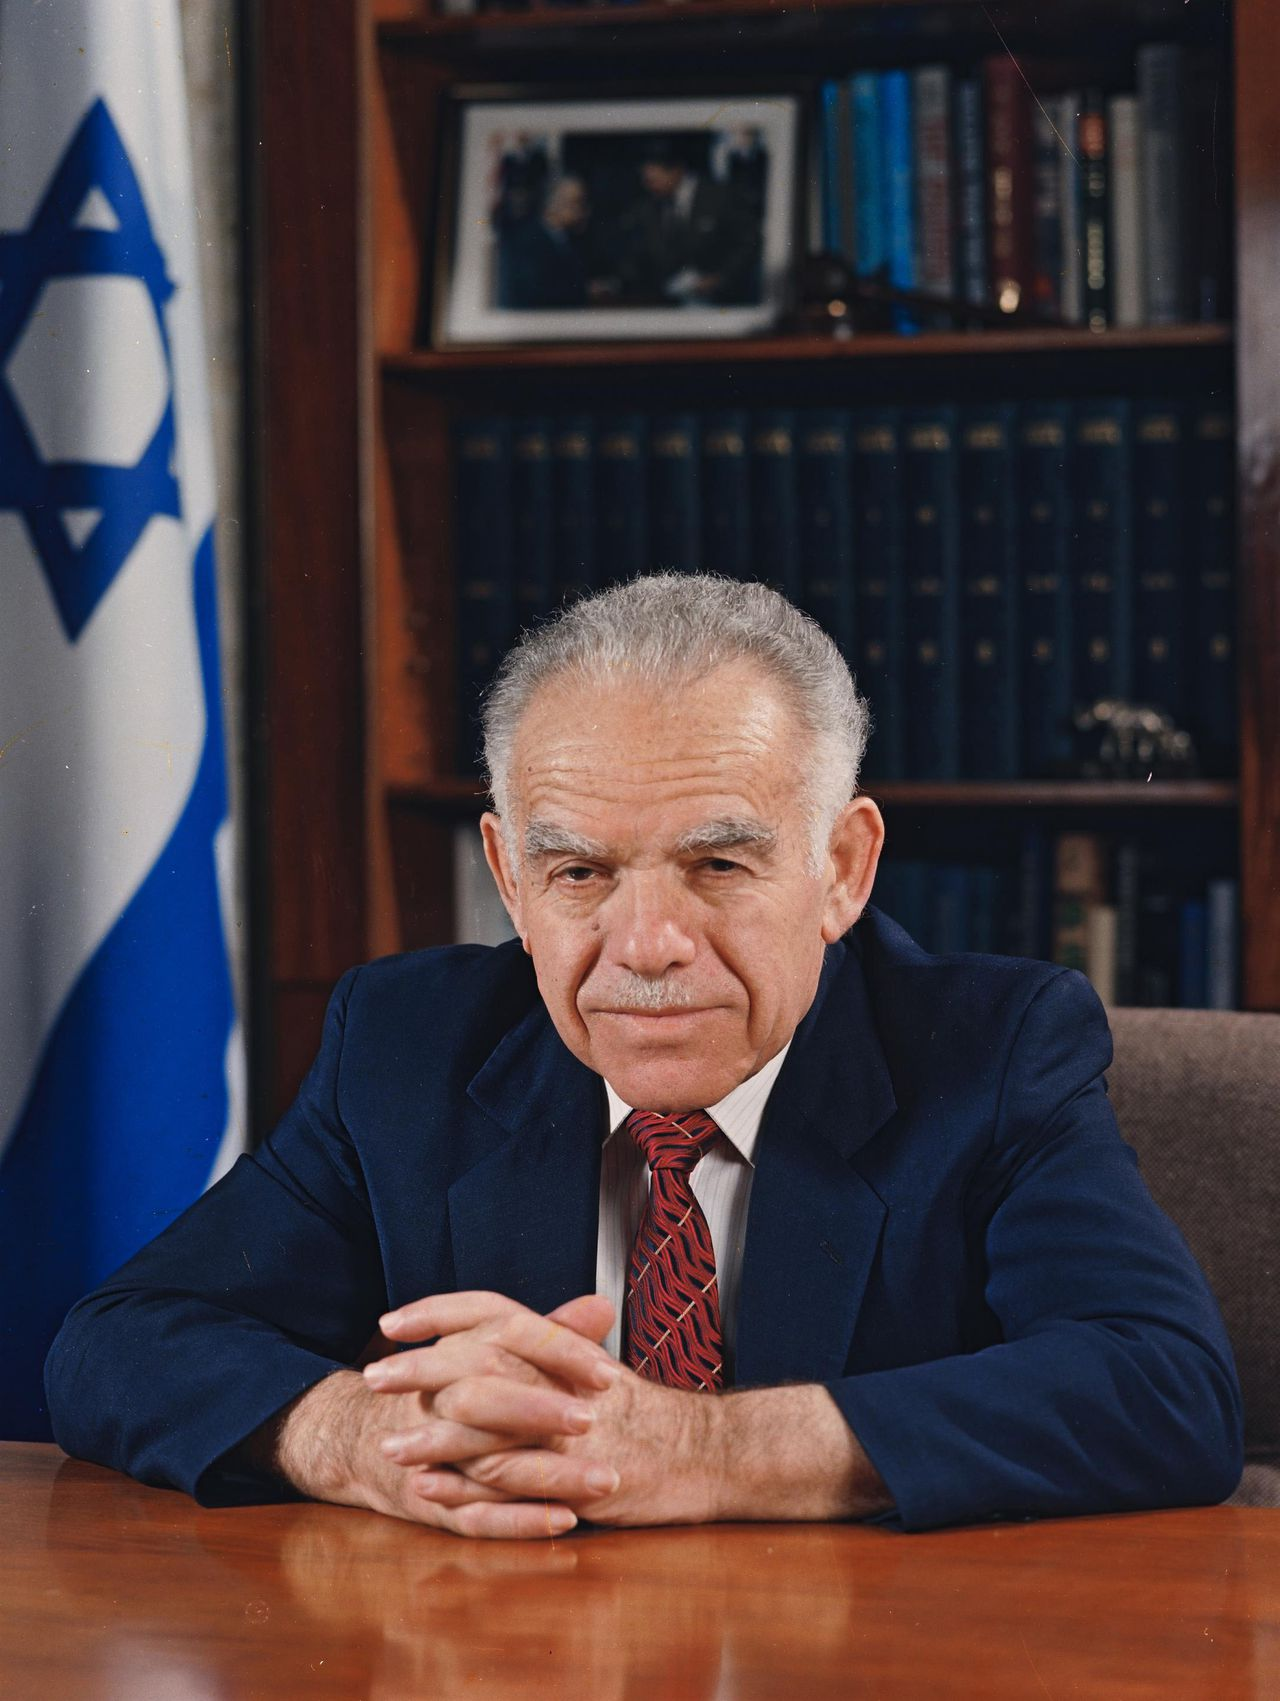 Israel's Prime Minister Yitzhak Shamir poses for a portrait in Jerusalem in this September 30, 1988 handout photo obtained by Reuters from the Israeli Government Press Office (GPO) on July 1, 2012. Shamir, the hawkish Israeli leader who two decades ago first balked at U.S. calls to trade occupied land for Middle East peace, died on Saturday after a long illness. He was 96. REUTERS/Yaacov Saar/GPO/Handout (JERUSALEM - Tags: POLITICS OBITUARY) FOR EDITORIAL USE ONLY. NOT FOR SALE FOR MARKETING OR ADVERTISING CAMPAIGNS. THIS IMAGE HAS BEEN SUPPLIED BY A THIRD PARTY. IT IS DISTRIBUTED, EXACTLY AS RECEIVED BY REUTERS, AS A SERVICE TO CLIENTS